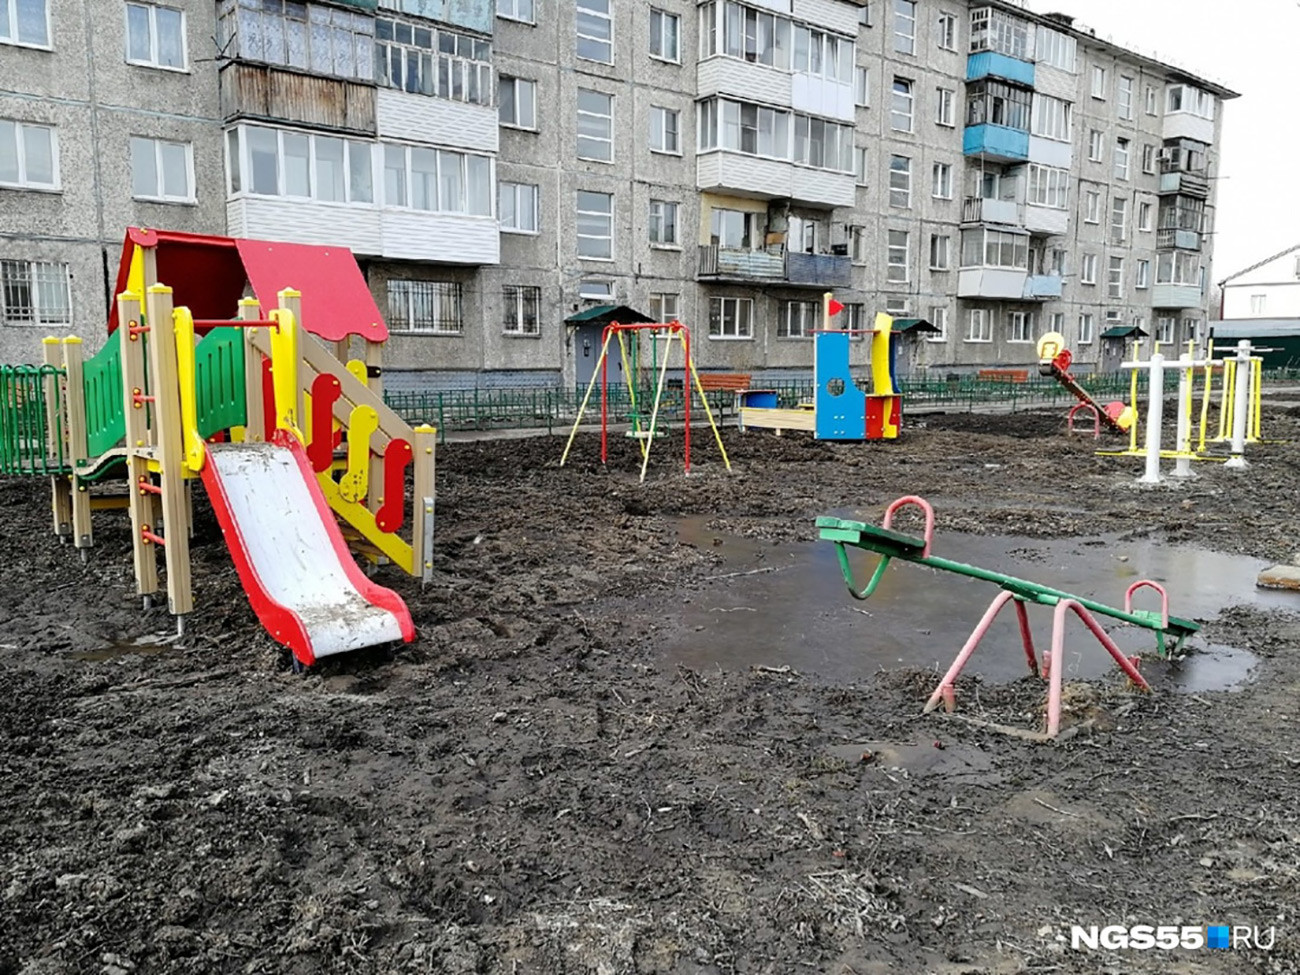 These Russian Children S Playgrounds Will Give You Nightmares Photos Russia Beyond